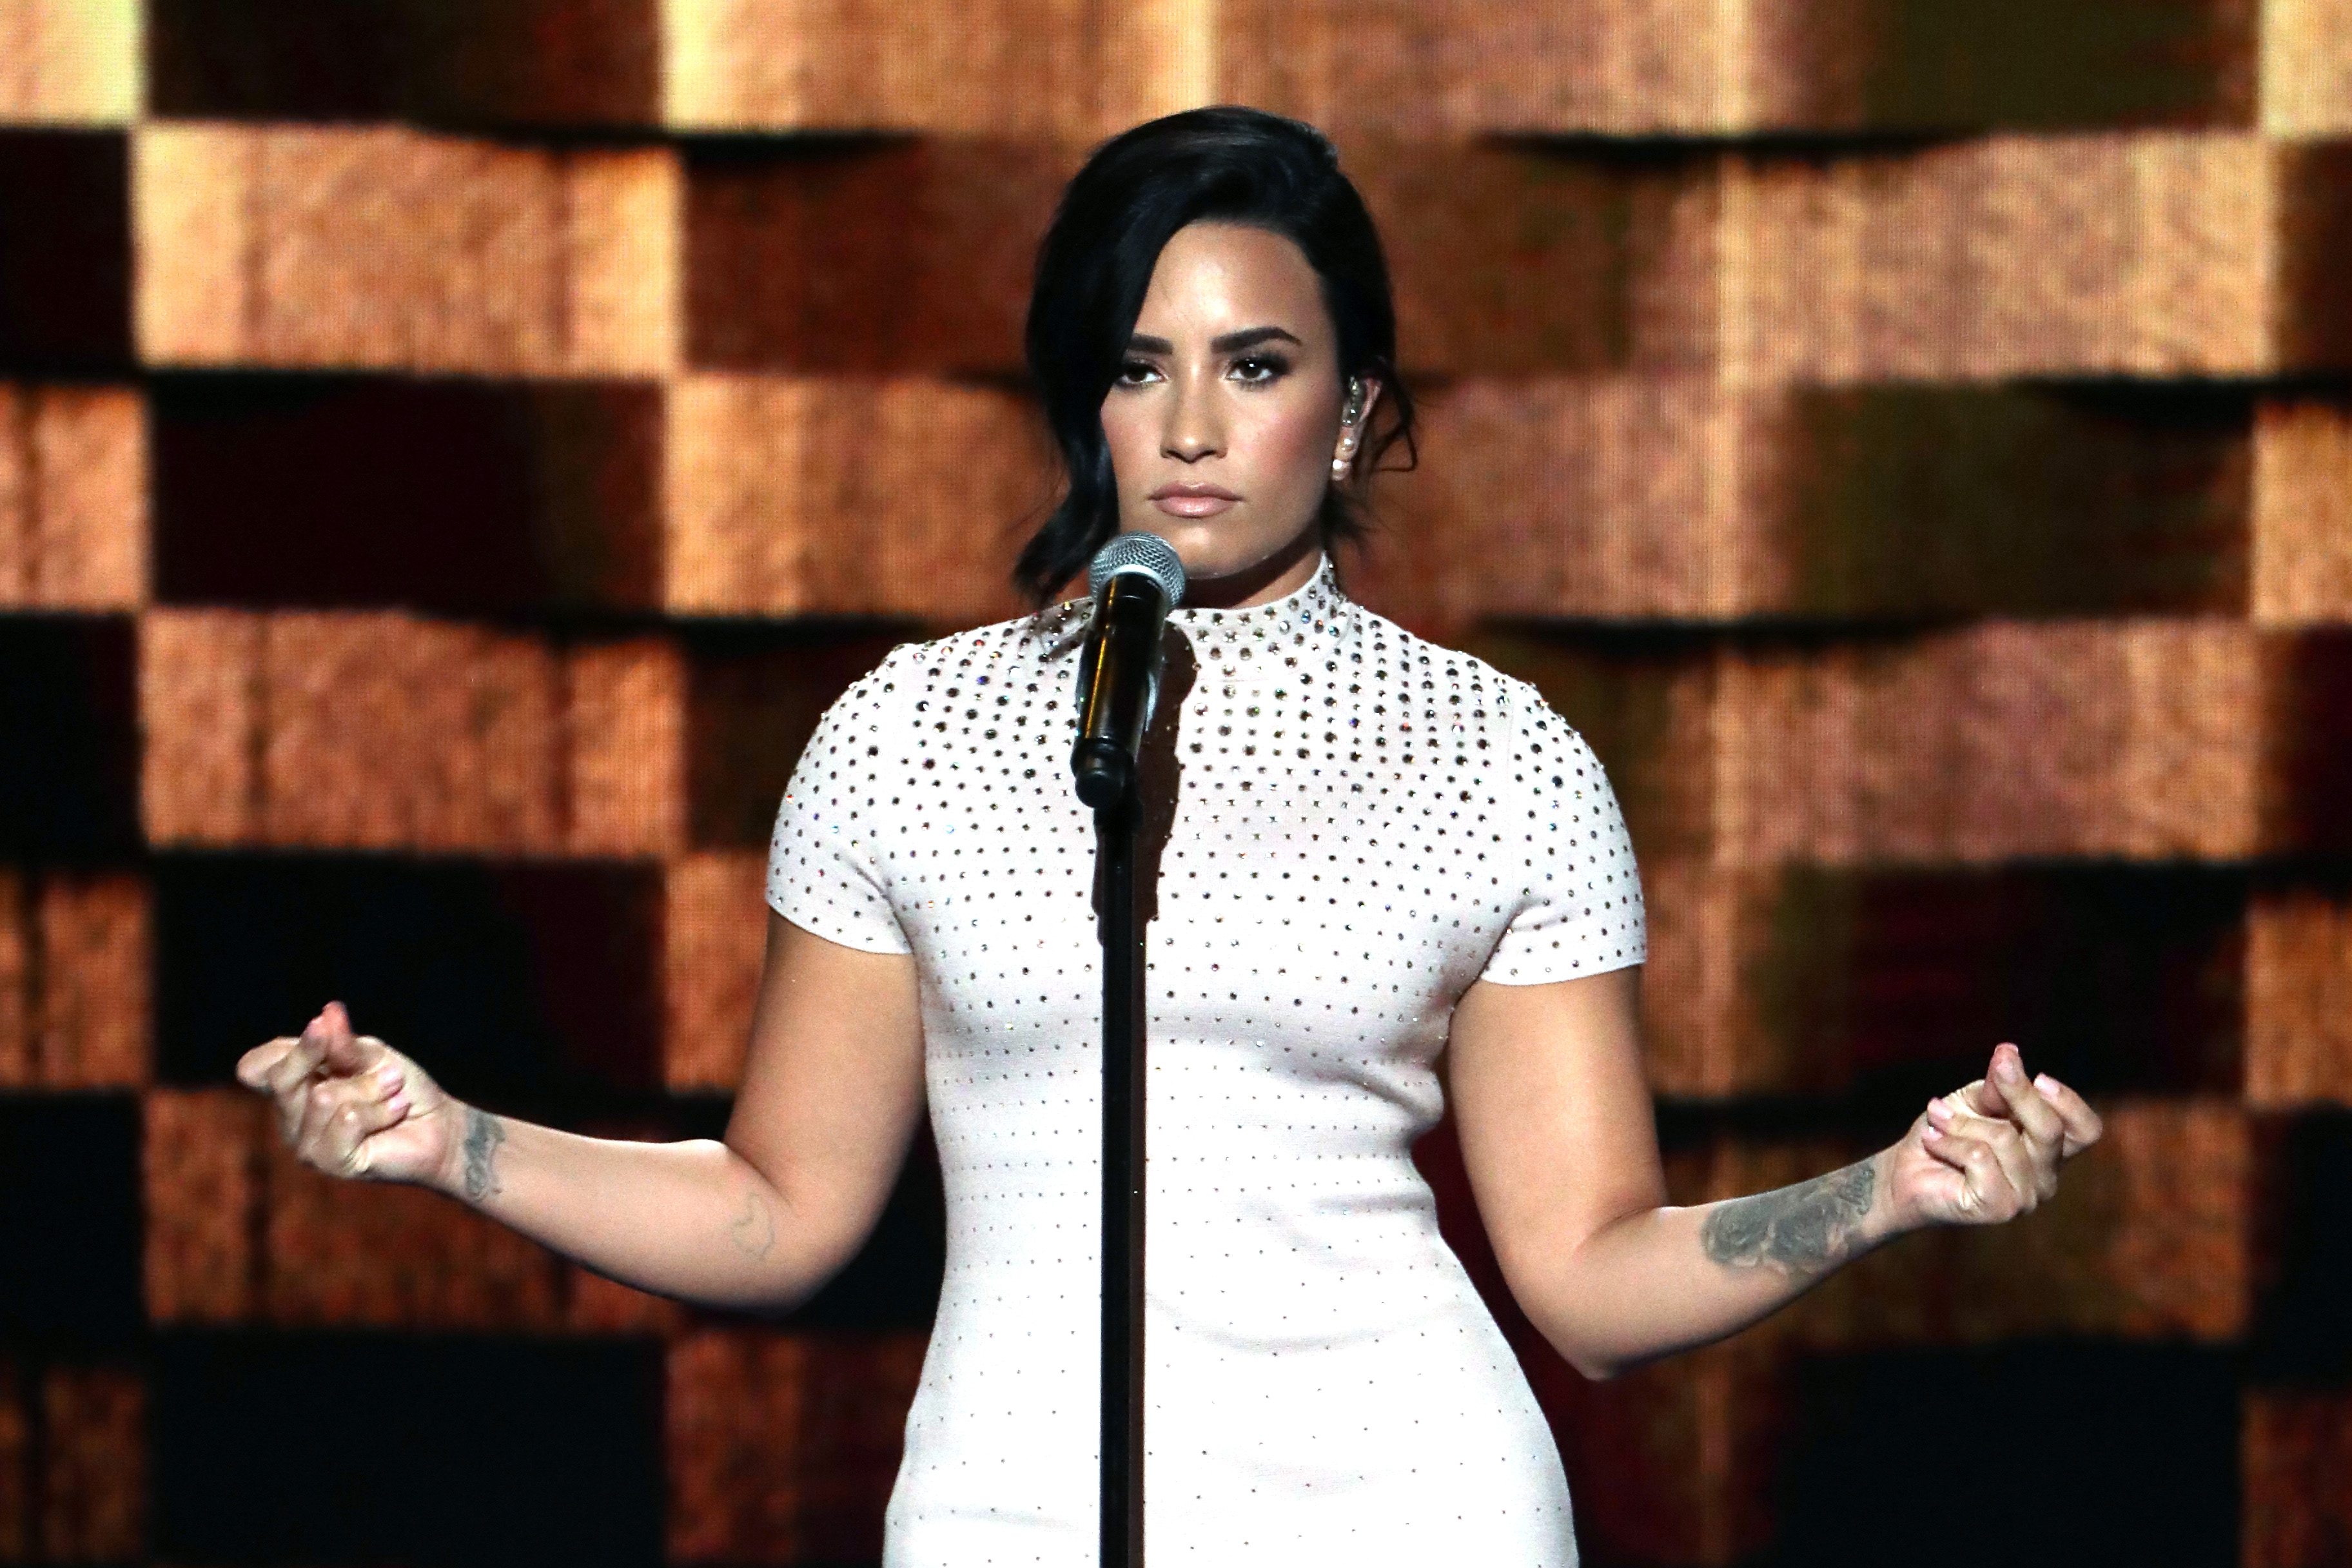 Singer Demi Lovato performs on stage during the first day of the Democratic National Convention at the Wells Fargo Center in Philadelphia on July 25, 2016.